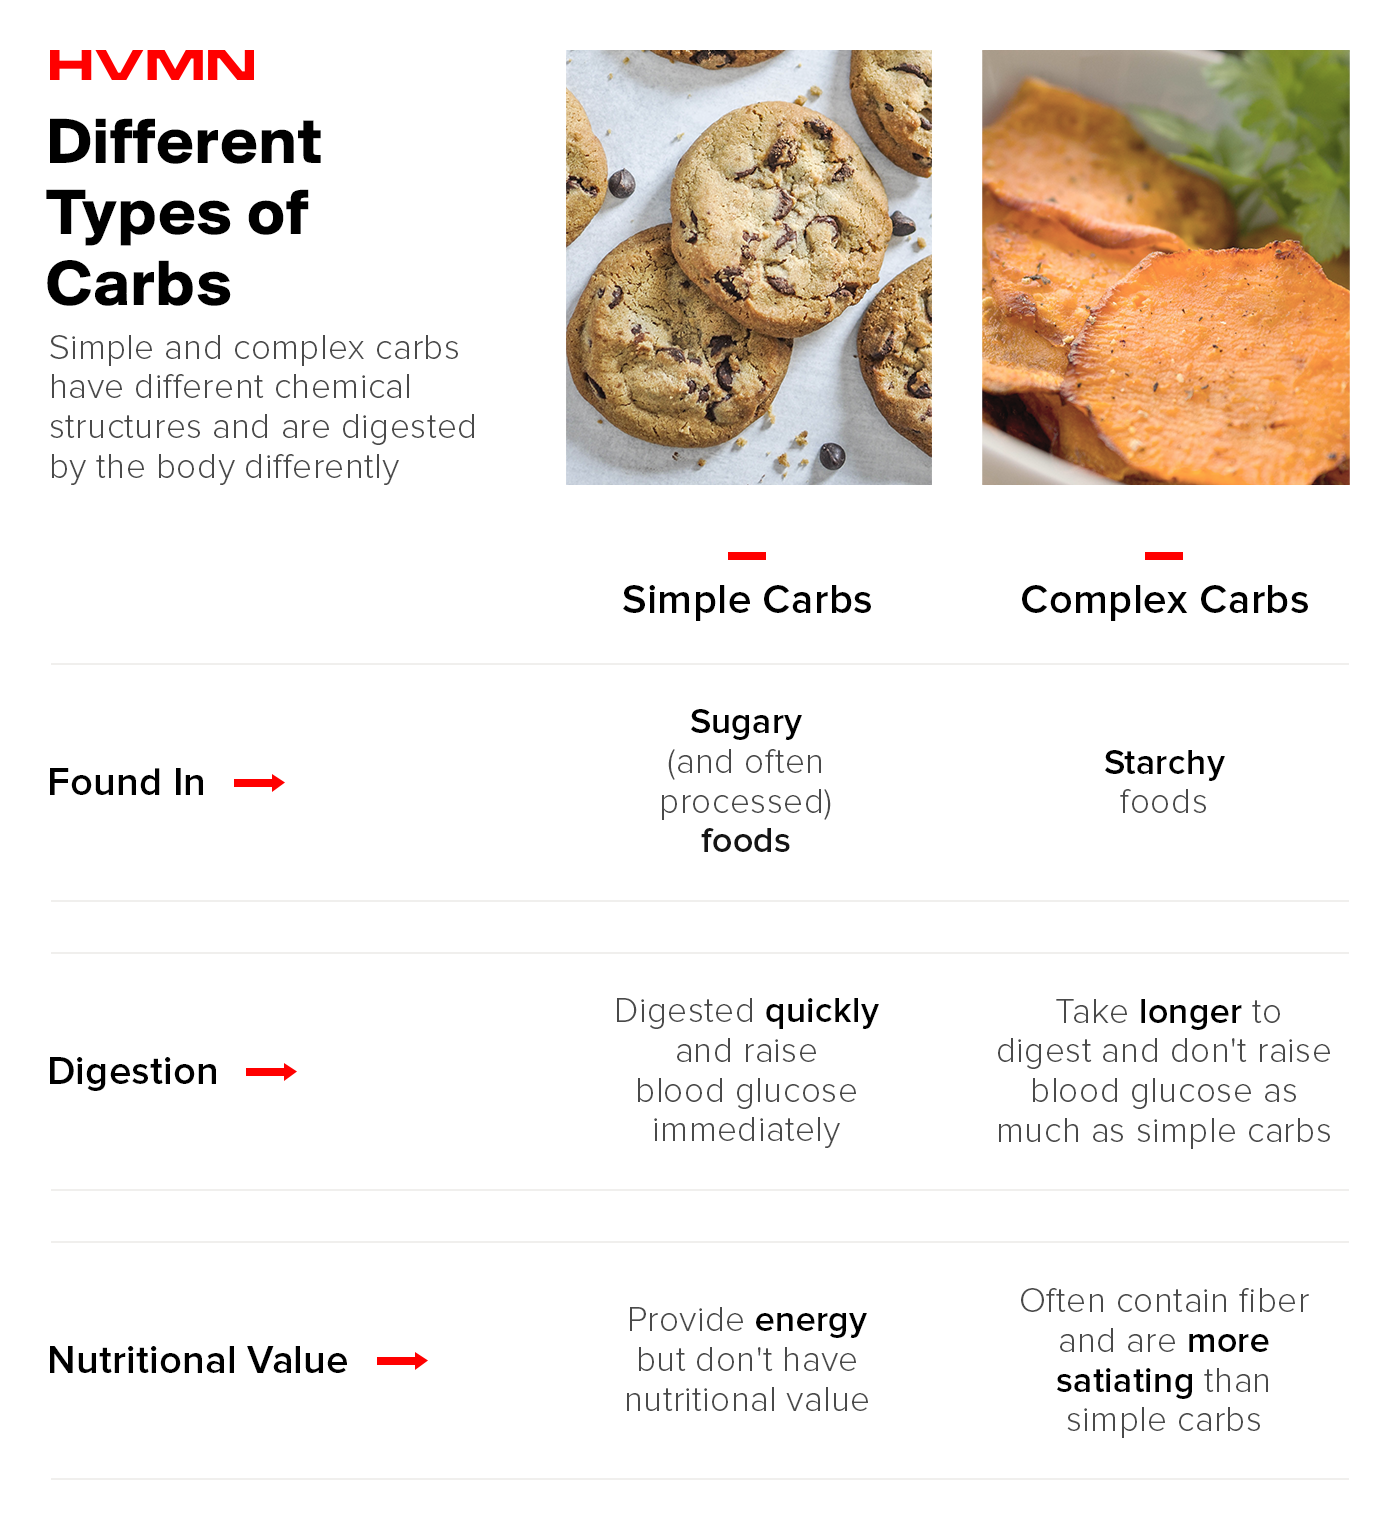 This image describes the differences between simple and complex carbs including where they're found, how they're digested, and their nutritional value.